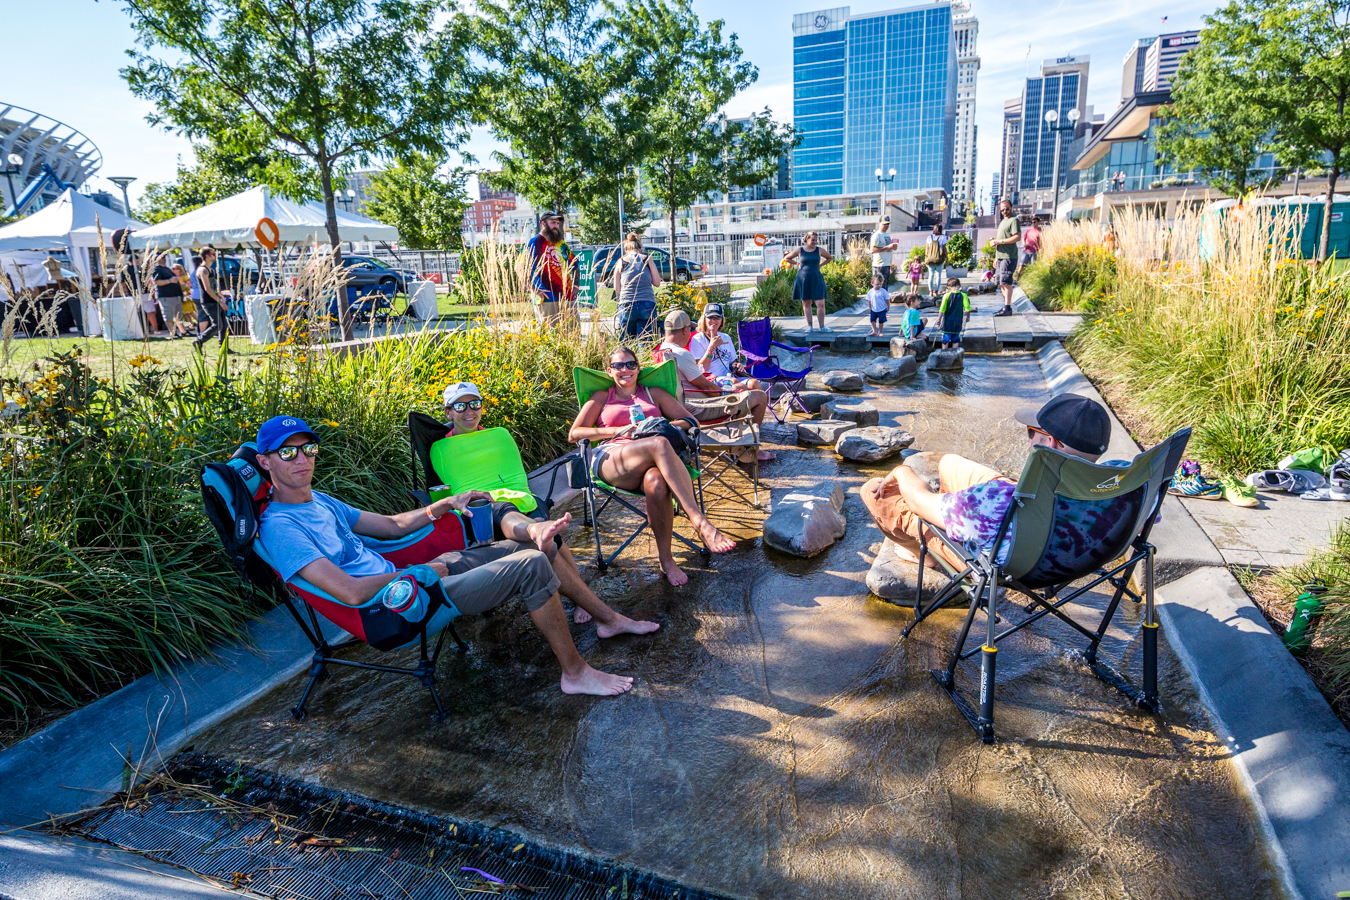 The Whispering Beard Folk Festival jammed for three days at Smale Park from Thursday, August 22 to Saturday, August 24. The festival was formerly held in Friendship, IN before coming to Cincinnati's riverfront this year. / Image: Catherine Viox // Published: 8.25.19